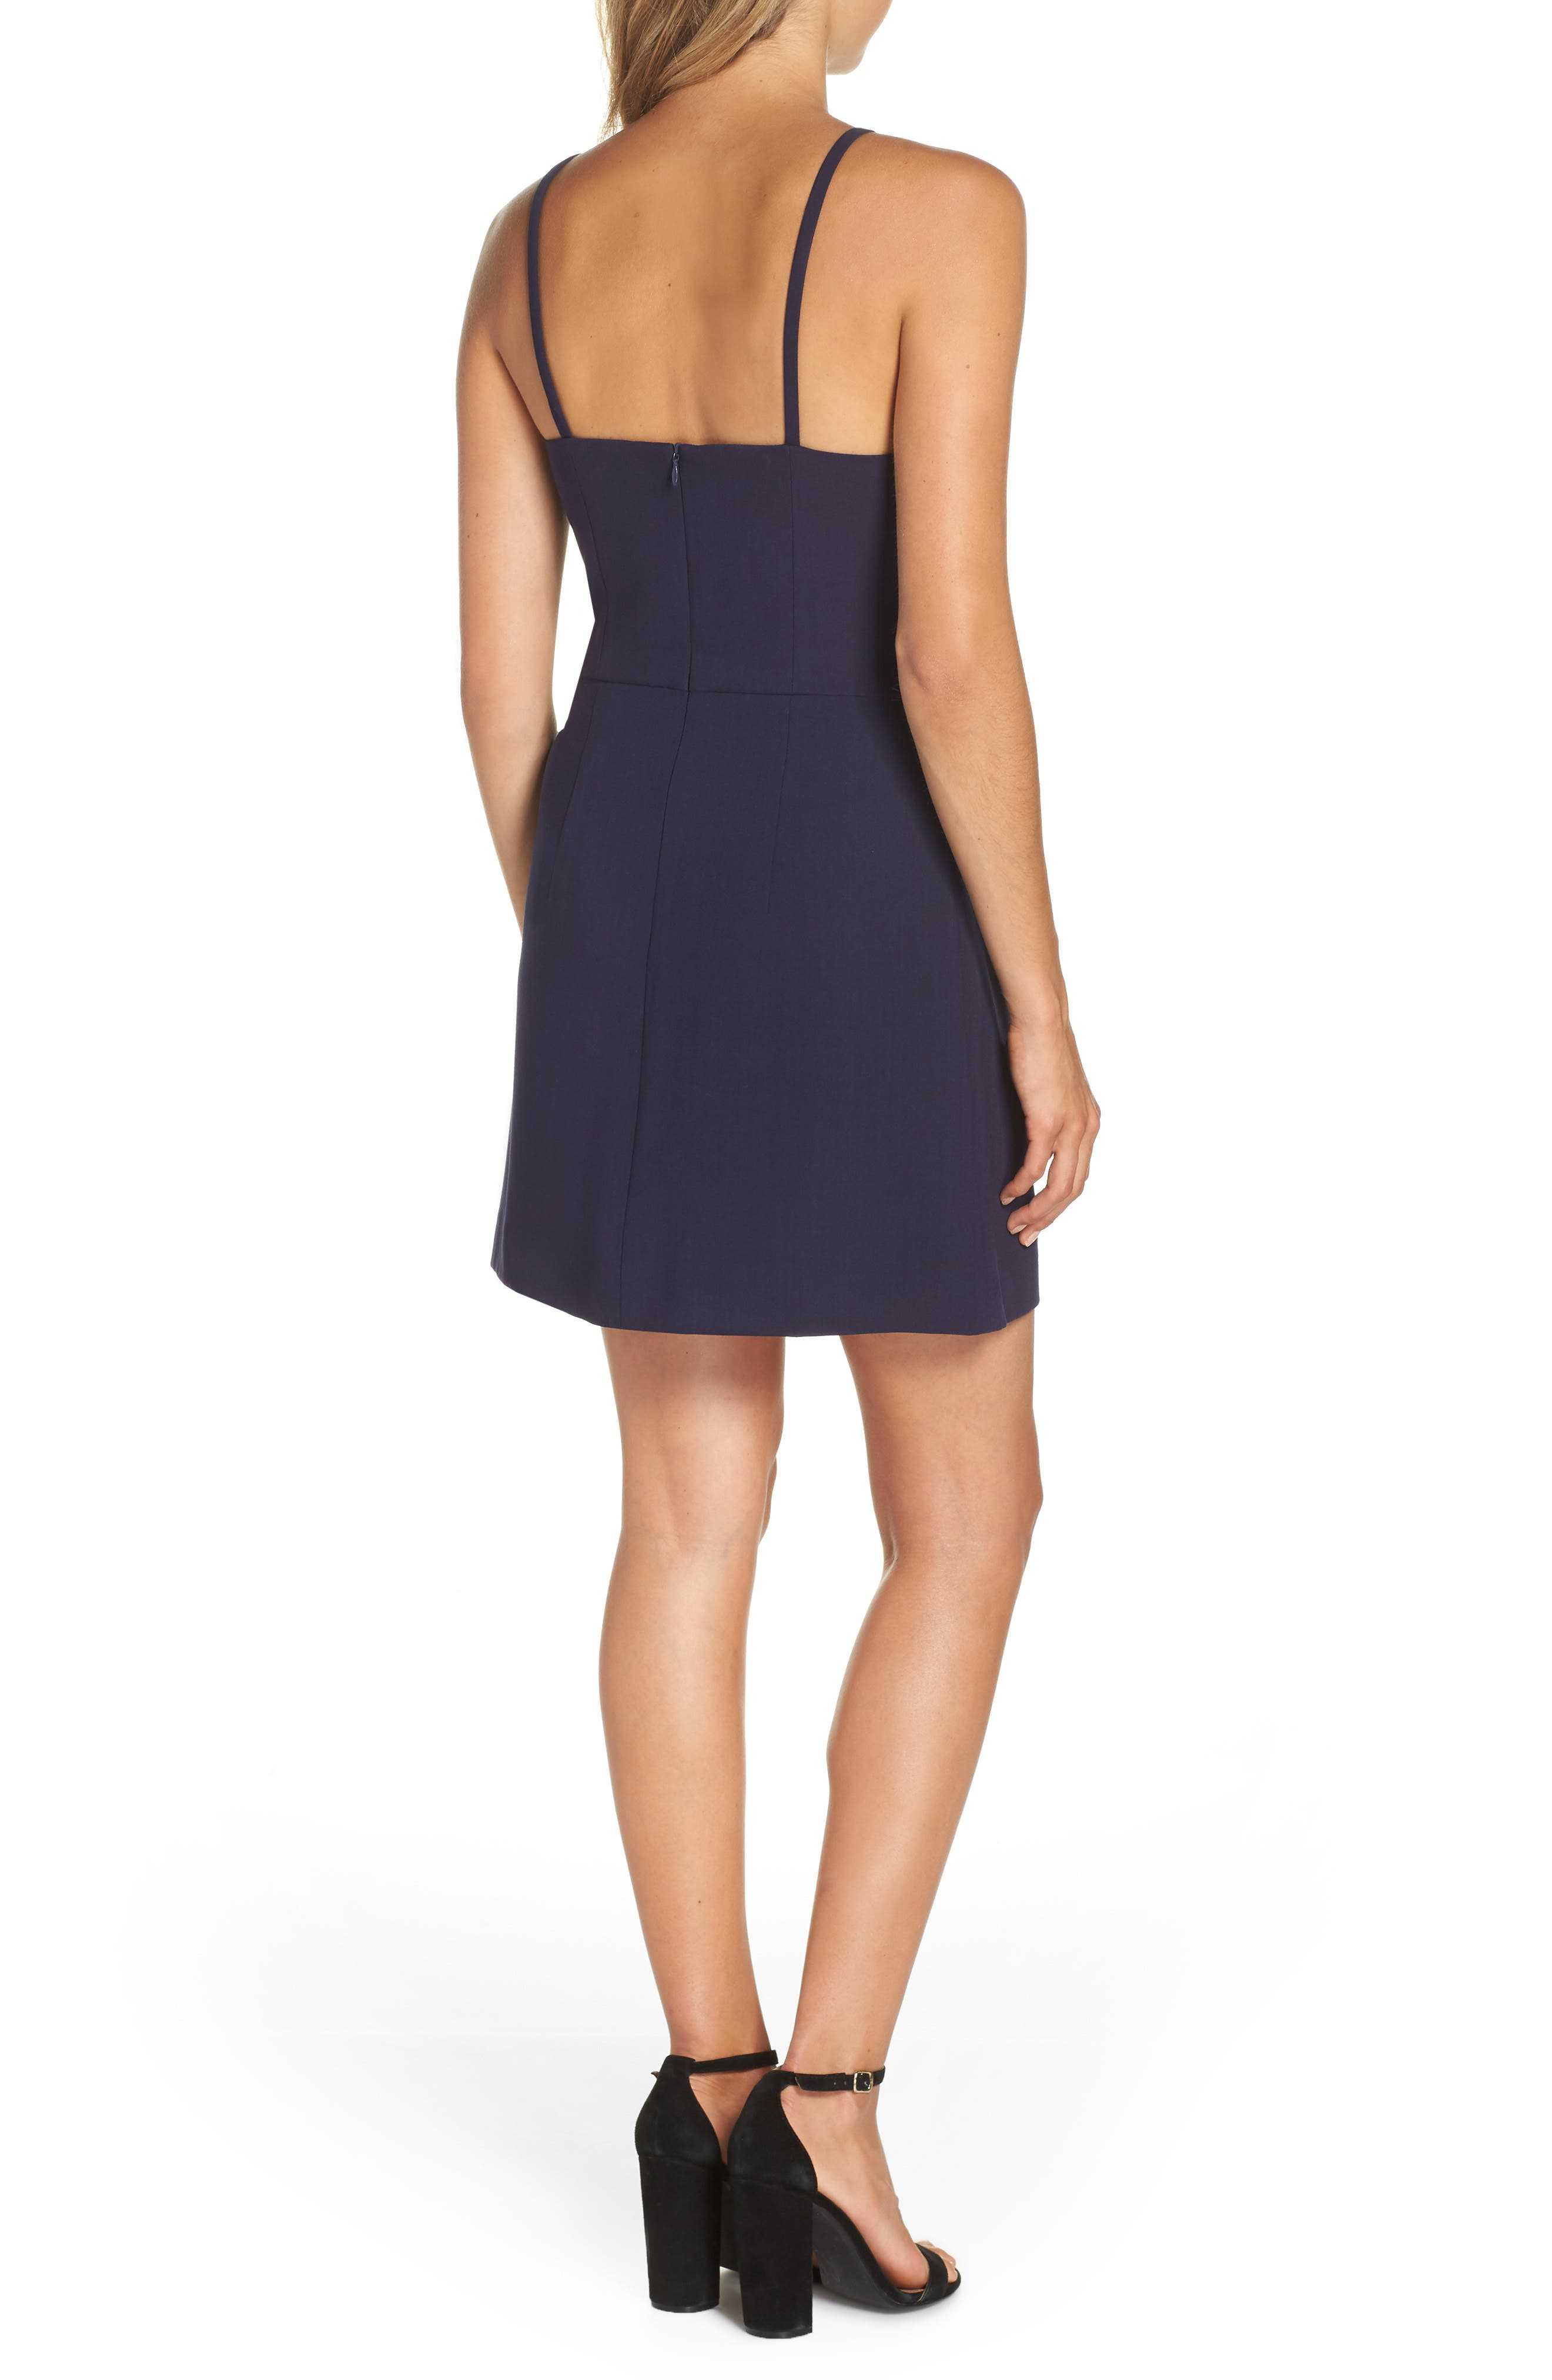 Whisper Light Sheath Dress,                             Alternate thumbnail 2, color,                             DUCHESS BLUE